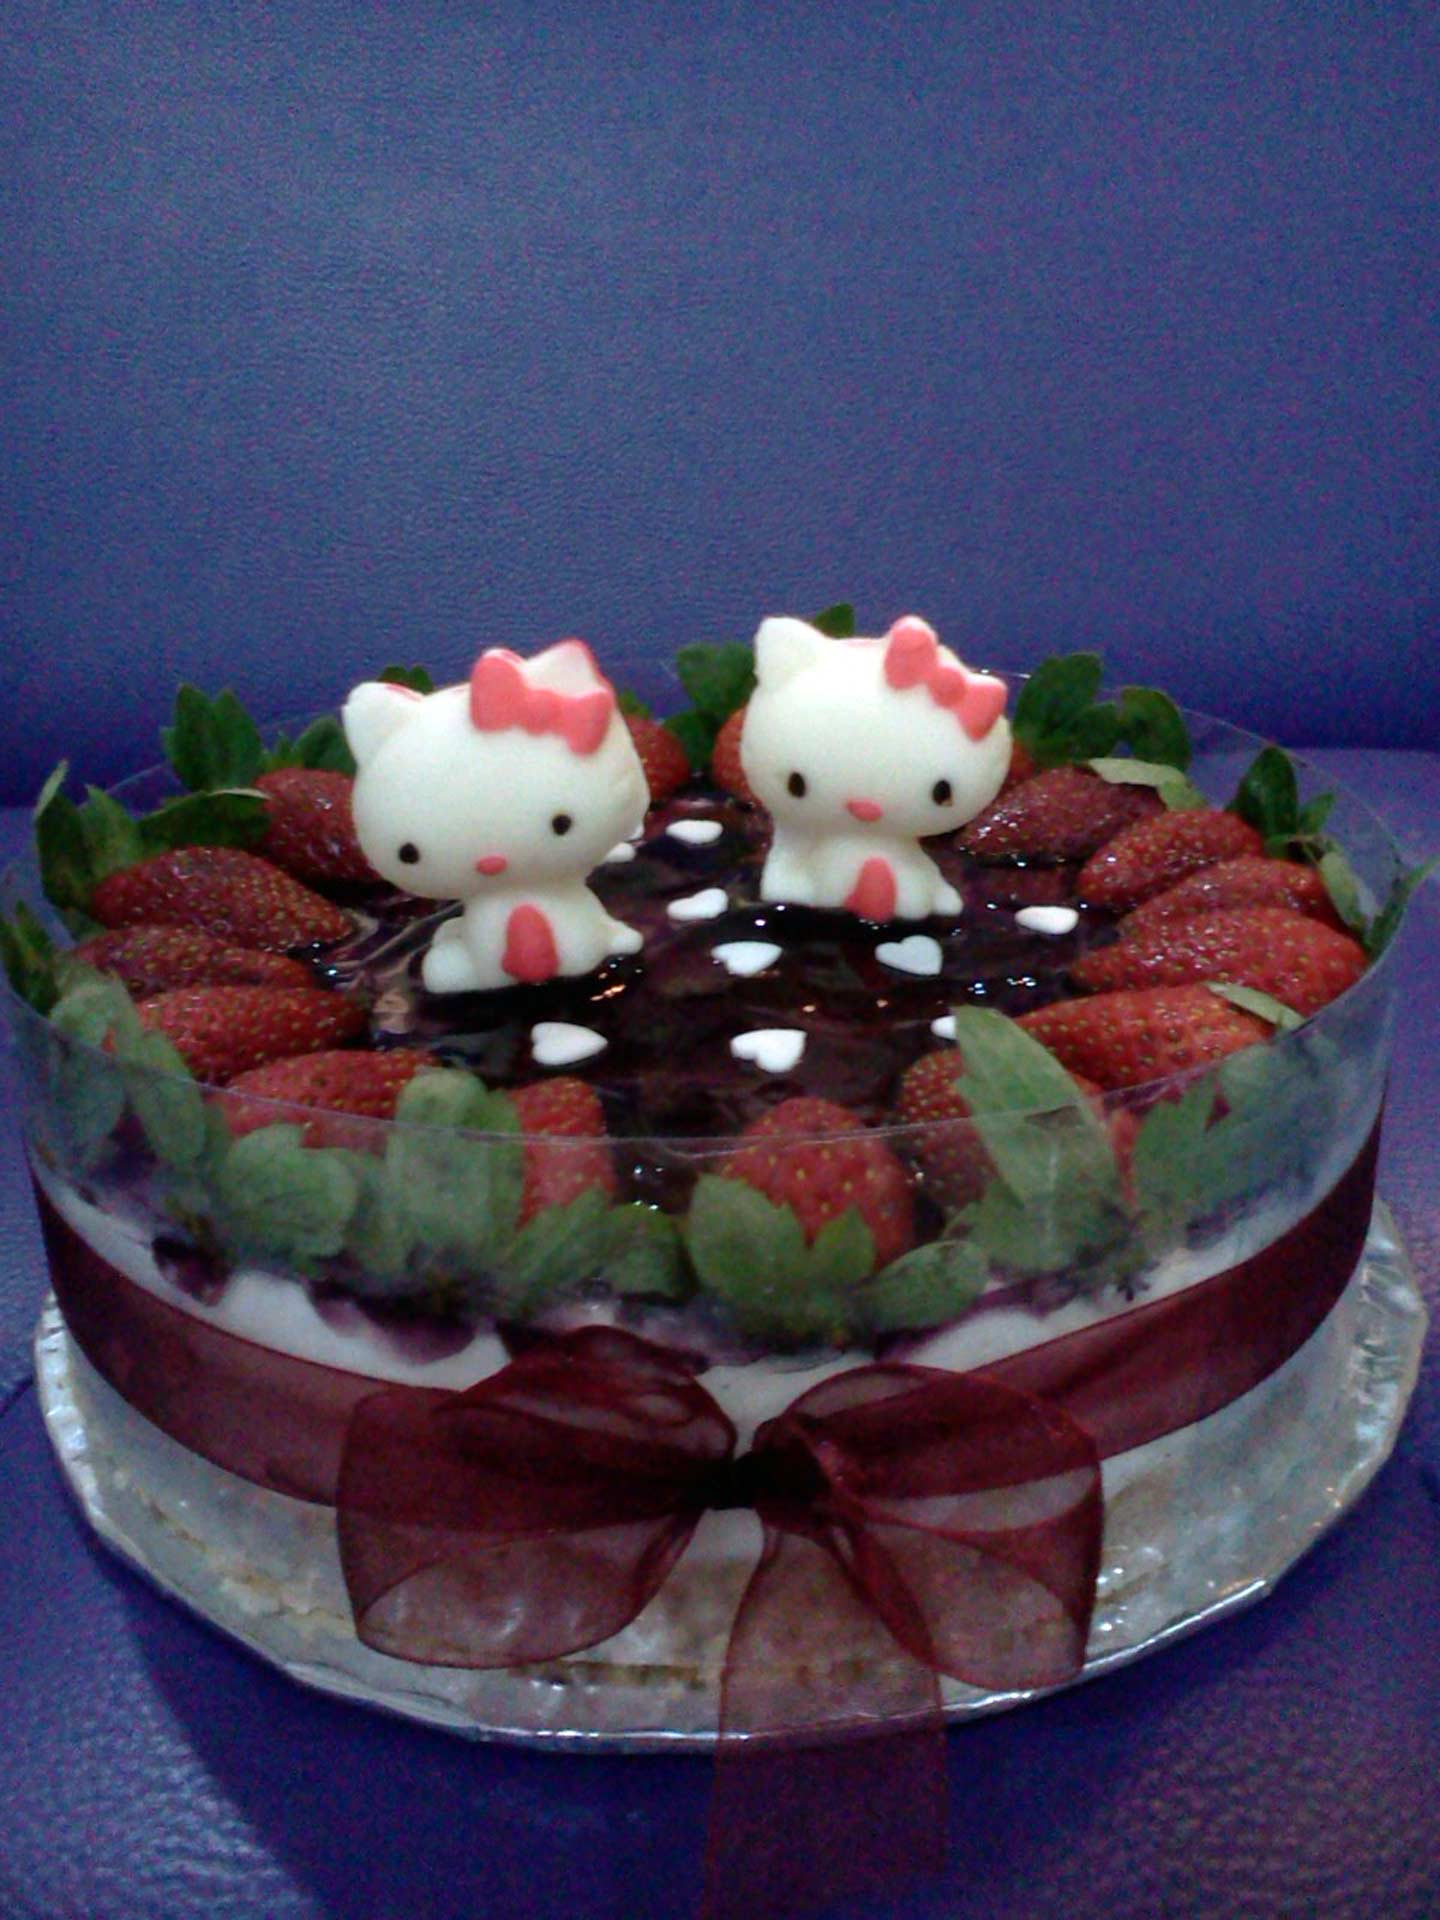 Unbaked-cheese-cake-22